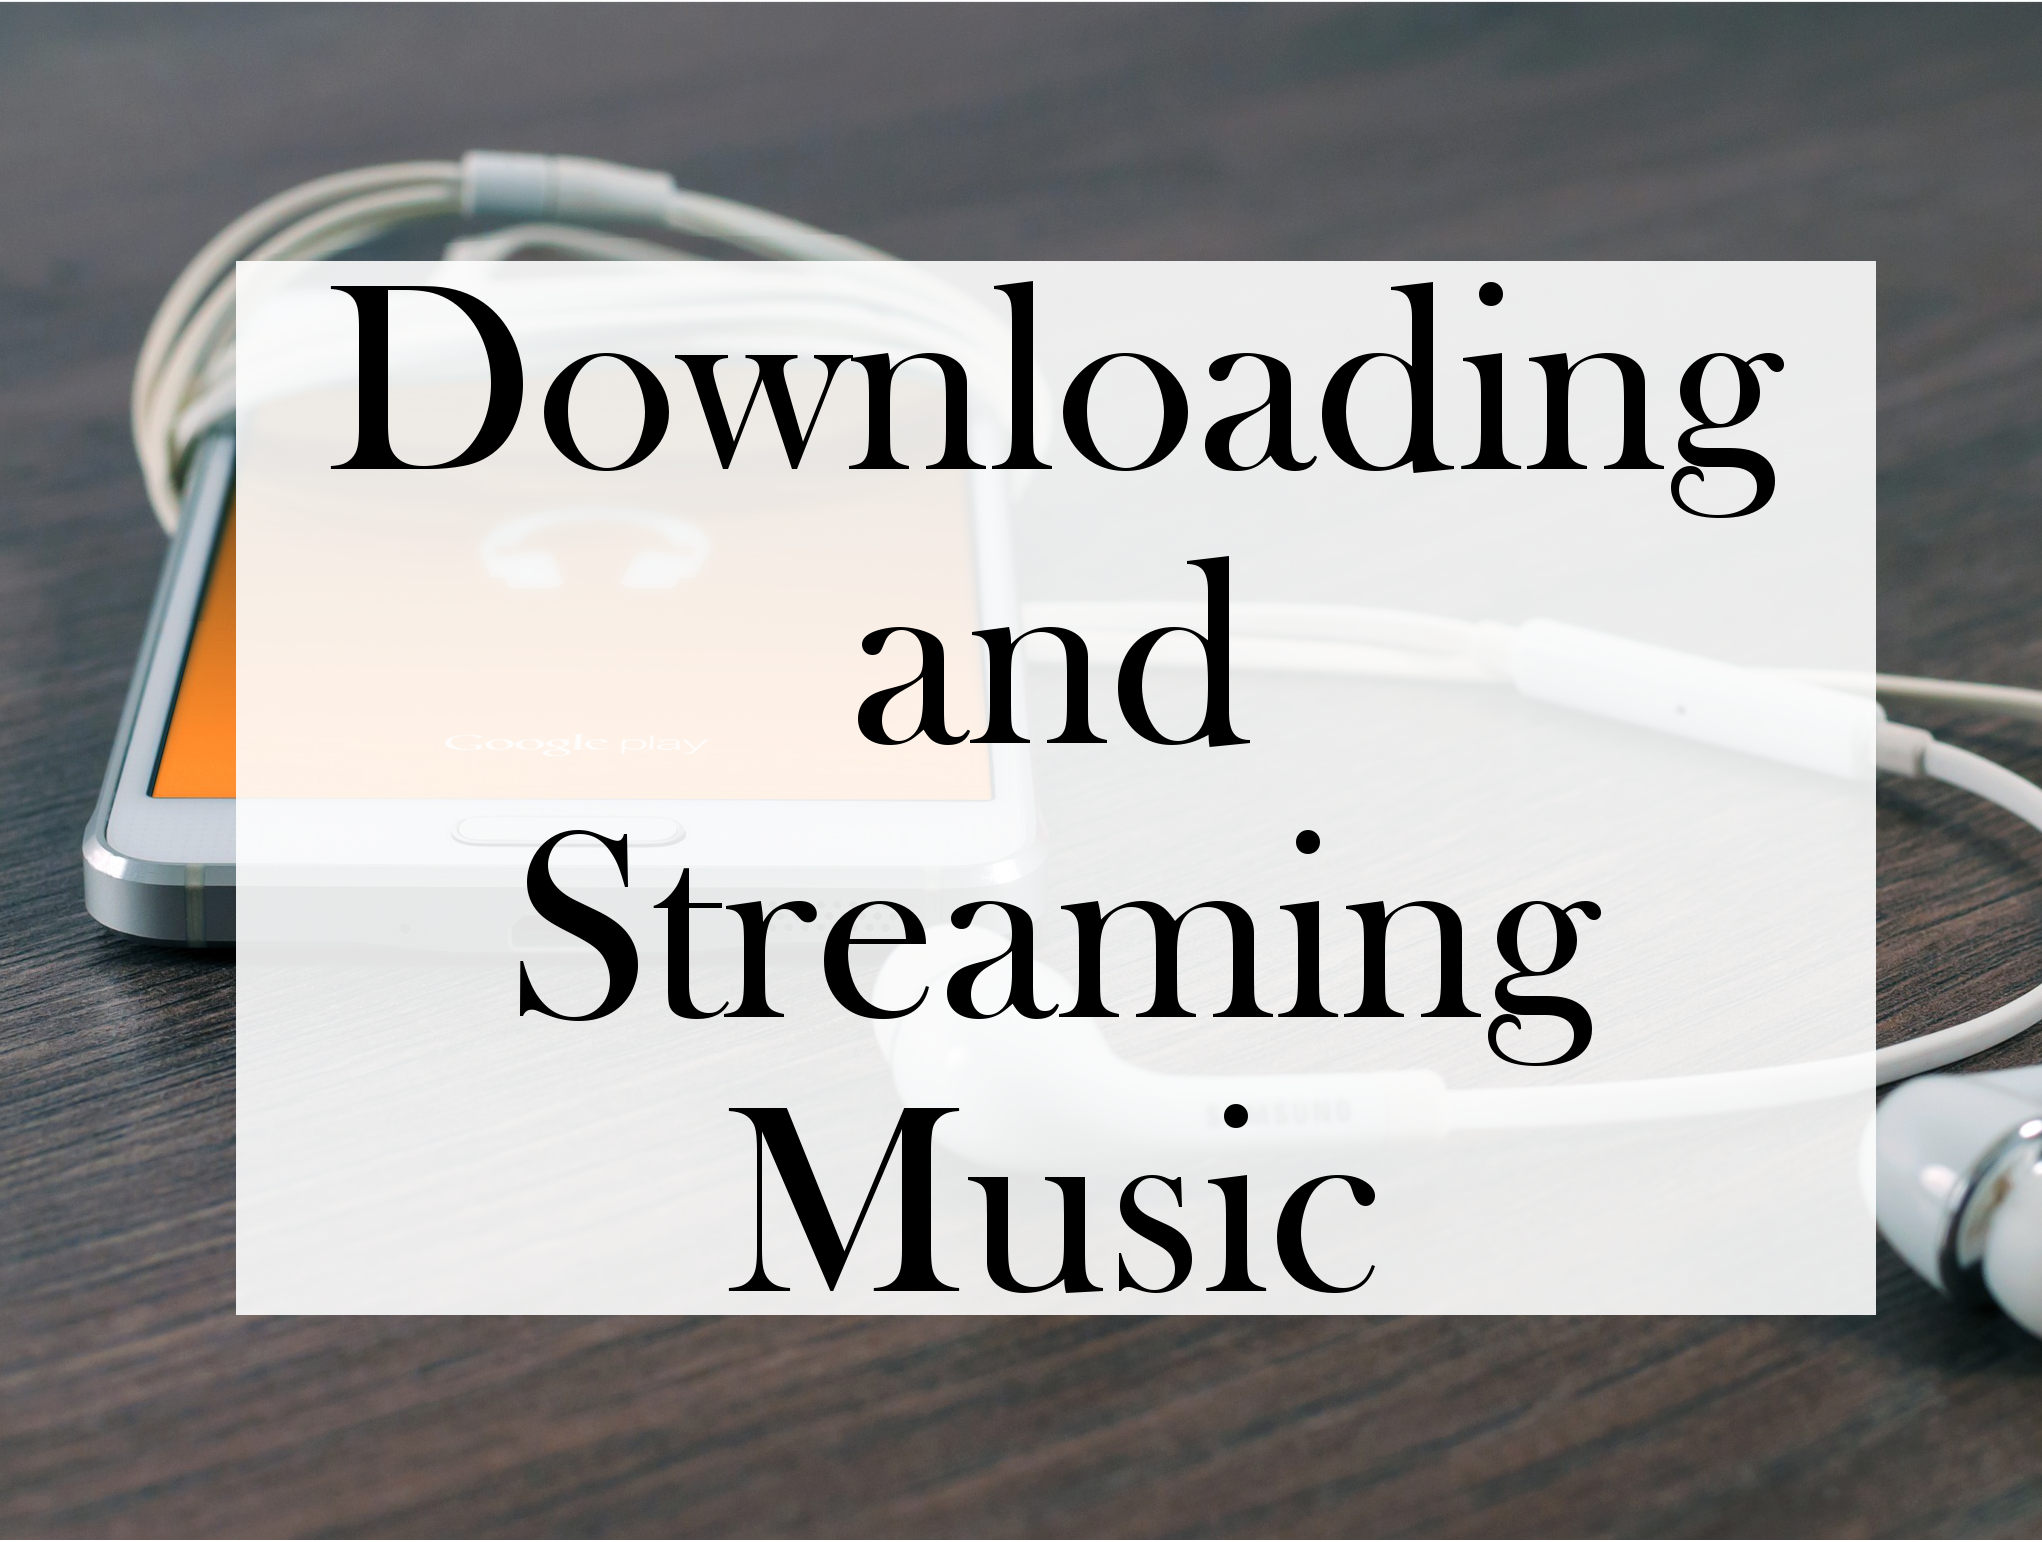 downloading and streaming music